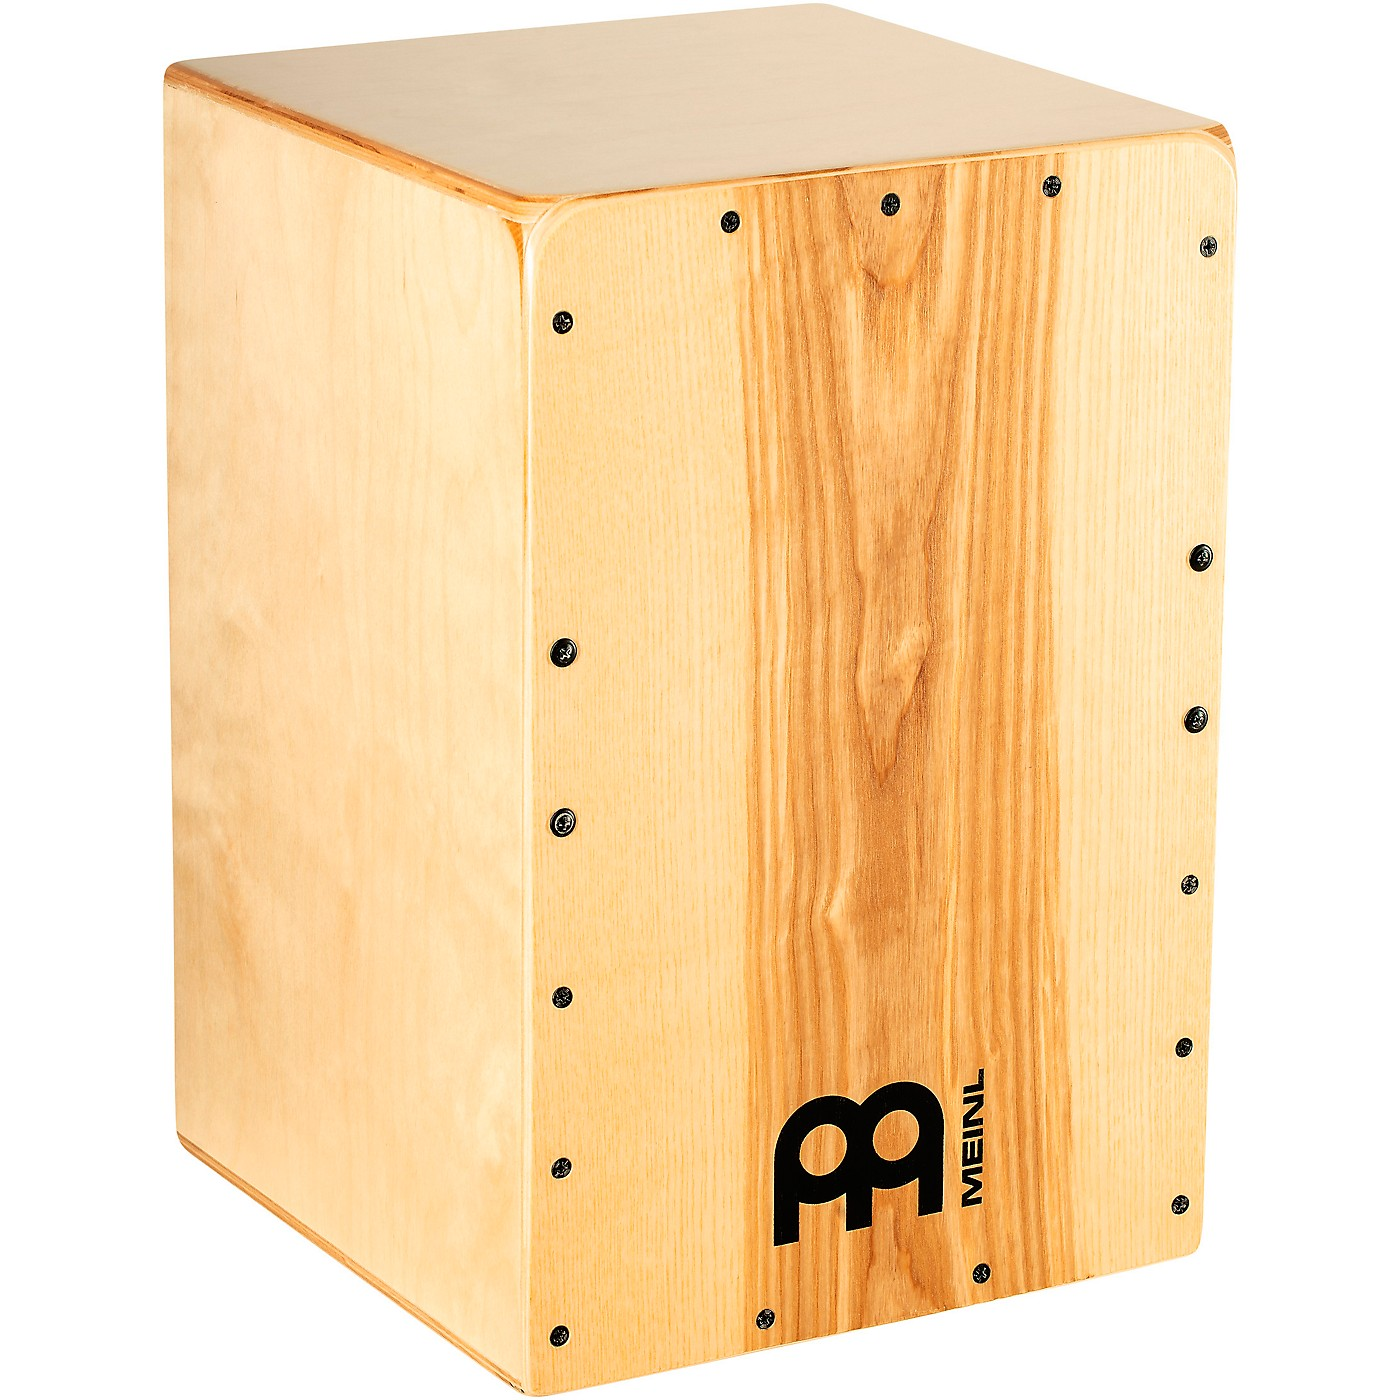 MEINL Percussion Snarecraft Series Cajon with Heart Ash Frontplate thumbnail